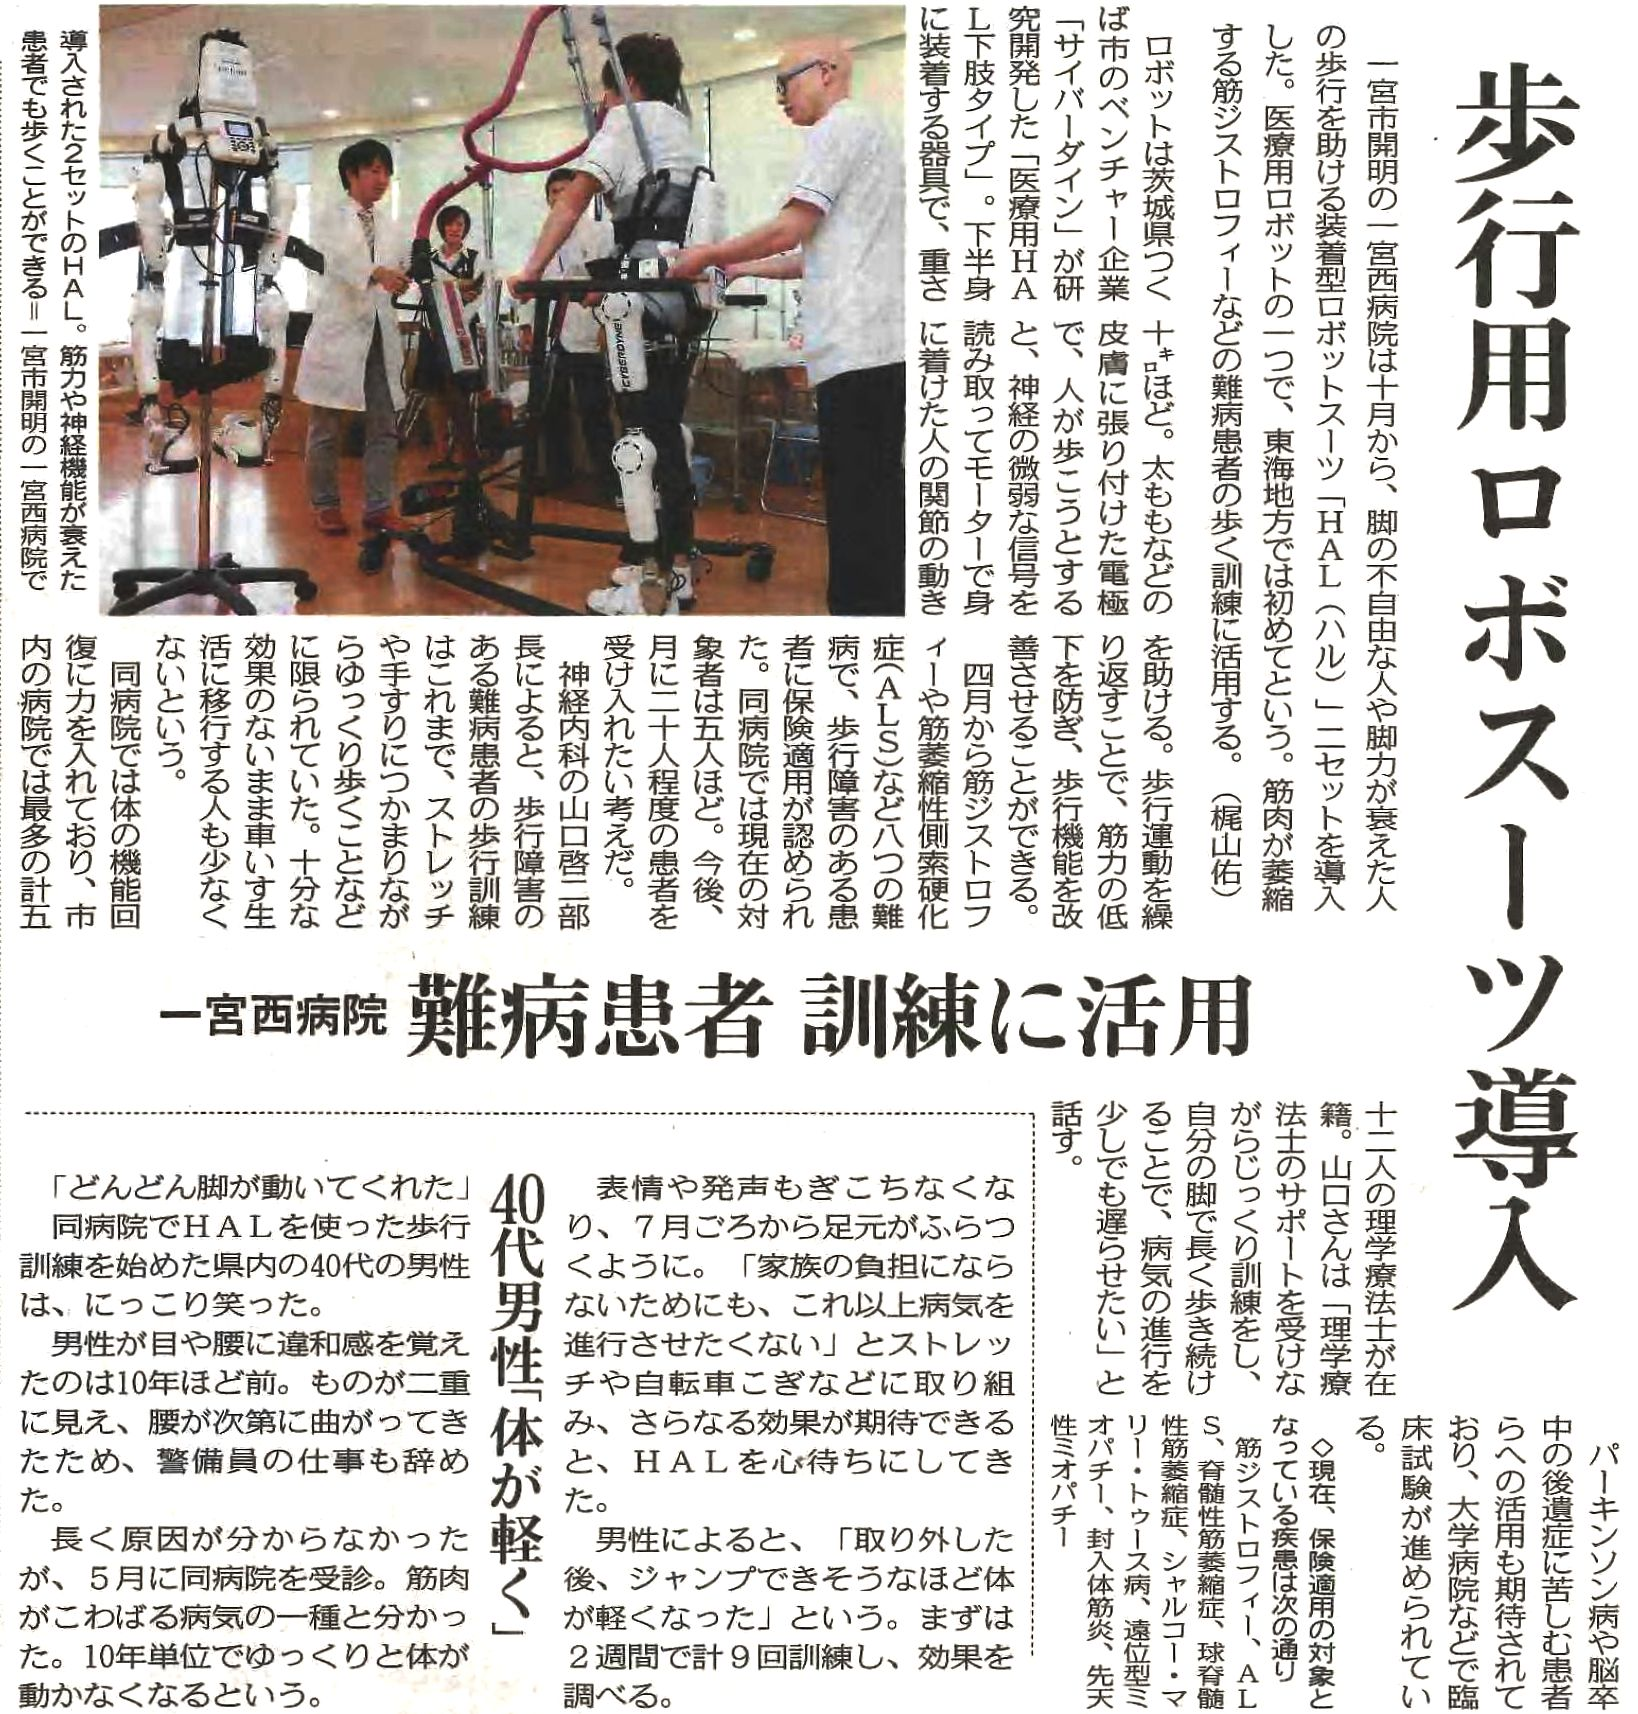 http://www.anzu.or.jp/lsc/lsc-upfile/news-in/03/71/371_1_file.JPG